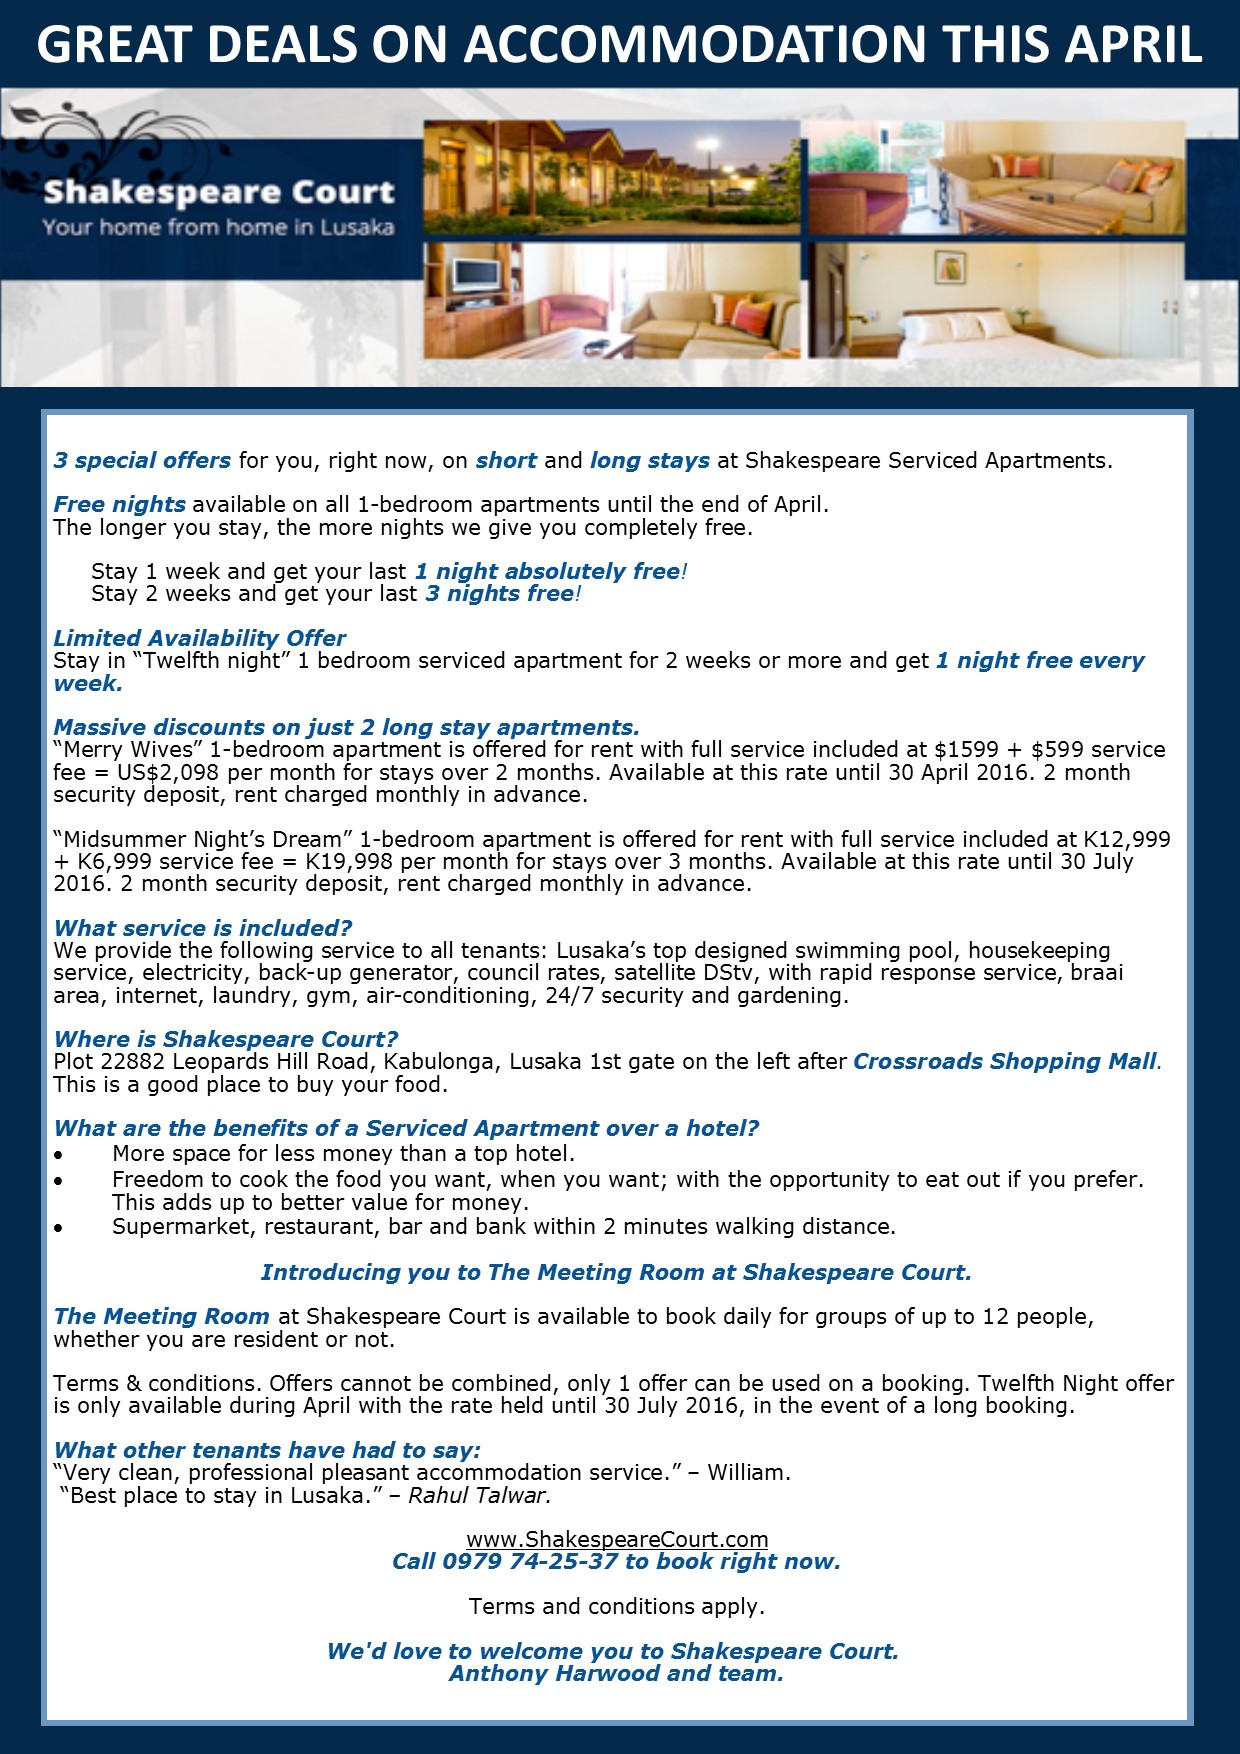 ccdb413ae78c 12.04.2016 - GREAT DEALS ON ACCOMMODATION THIS APRIL » Ad-dicts Ads ...